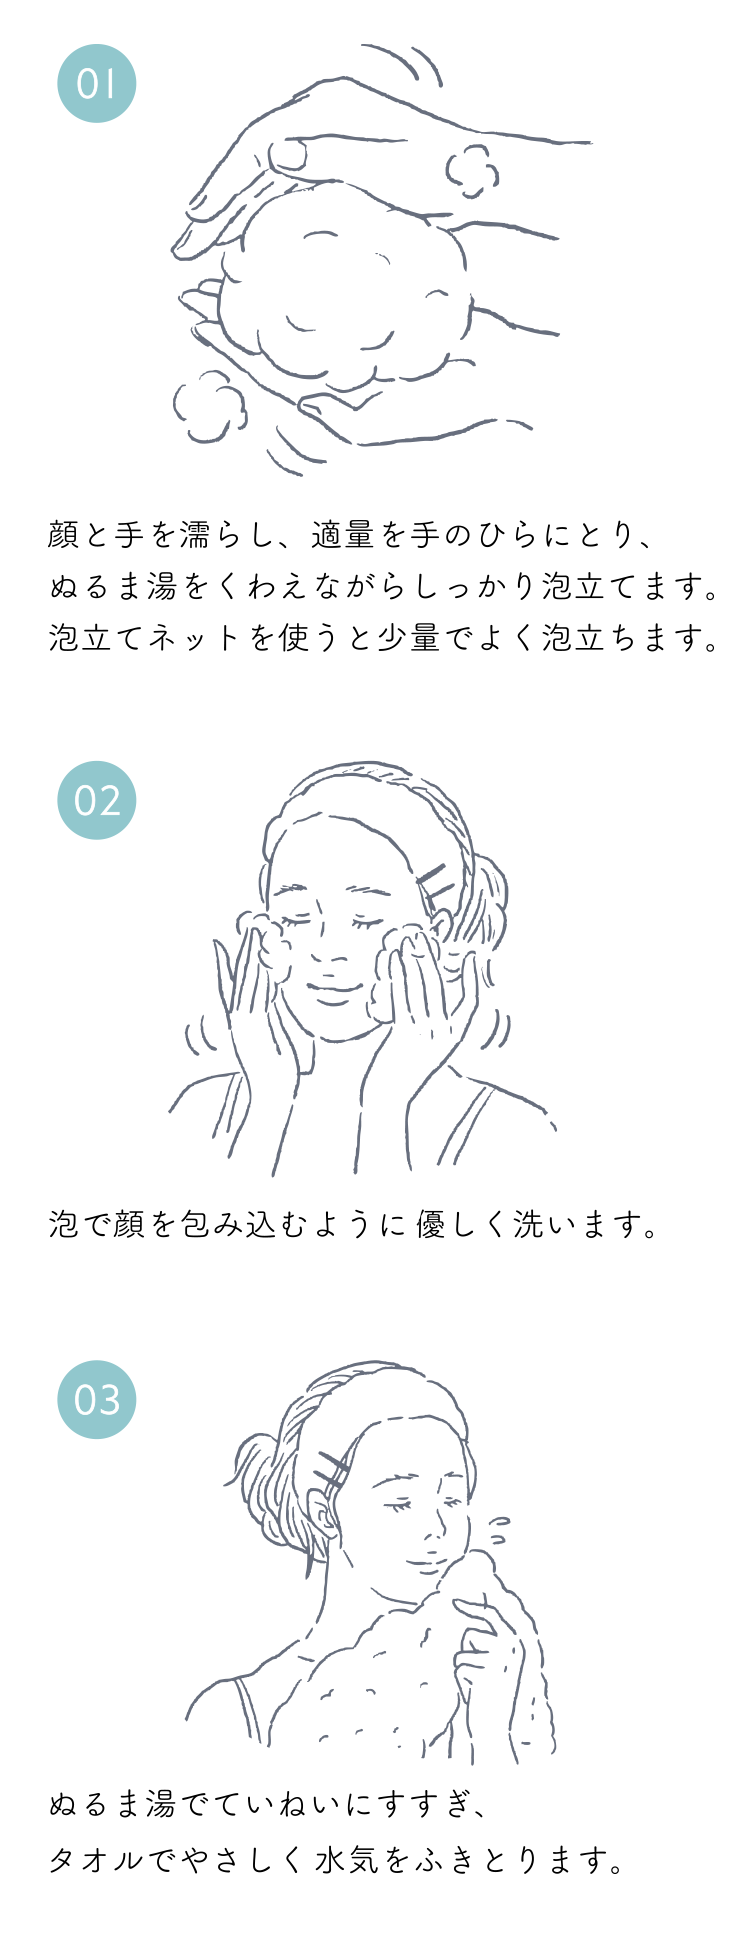 HOW TO USE イラスト